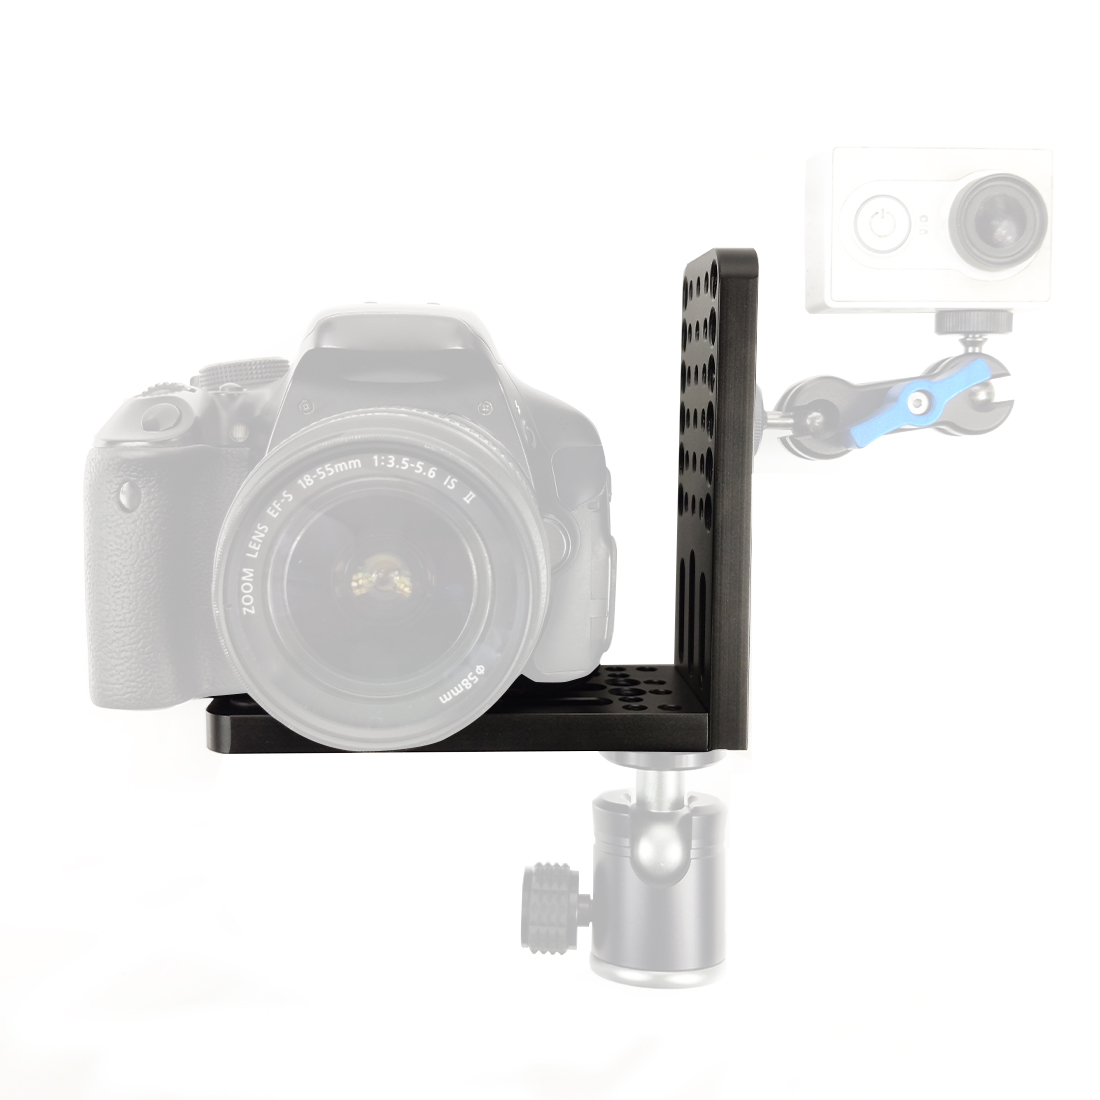 L Plate Bracket Vertical Shoot for Video Camera Tripod 1/4 3/8 Screw Holes for Zhiyun Feiyu For Canon EOS 6D 7D 5D Mark II/III